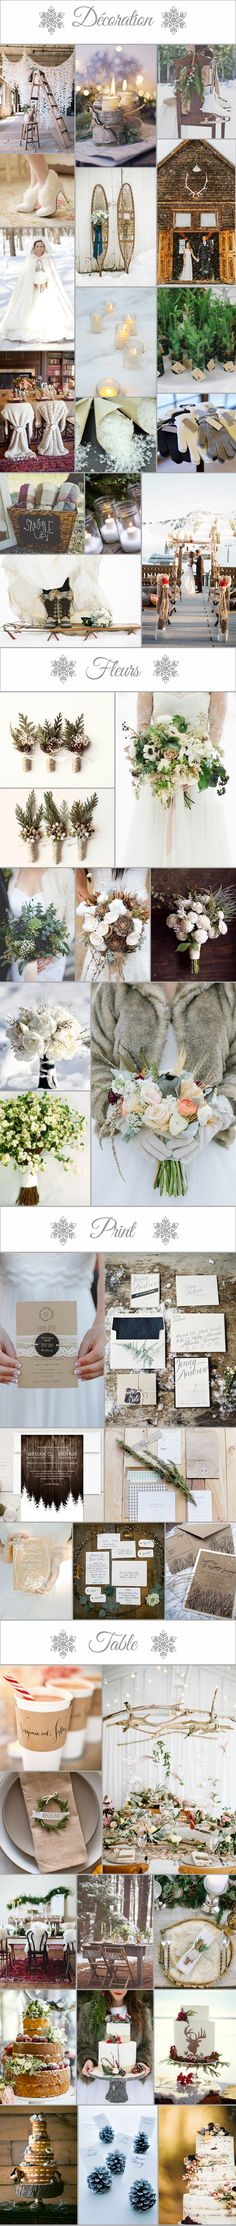 Inspiration winter party .  Mademoiselle Caudine